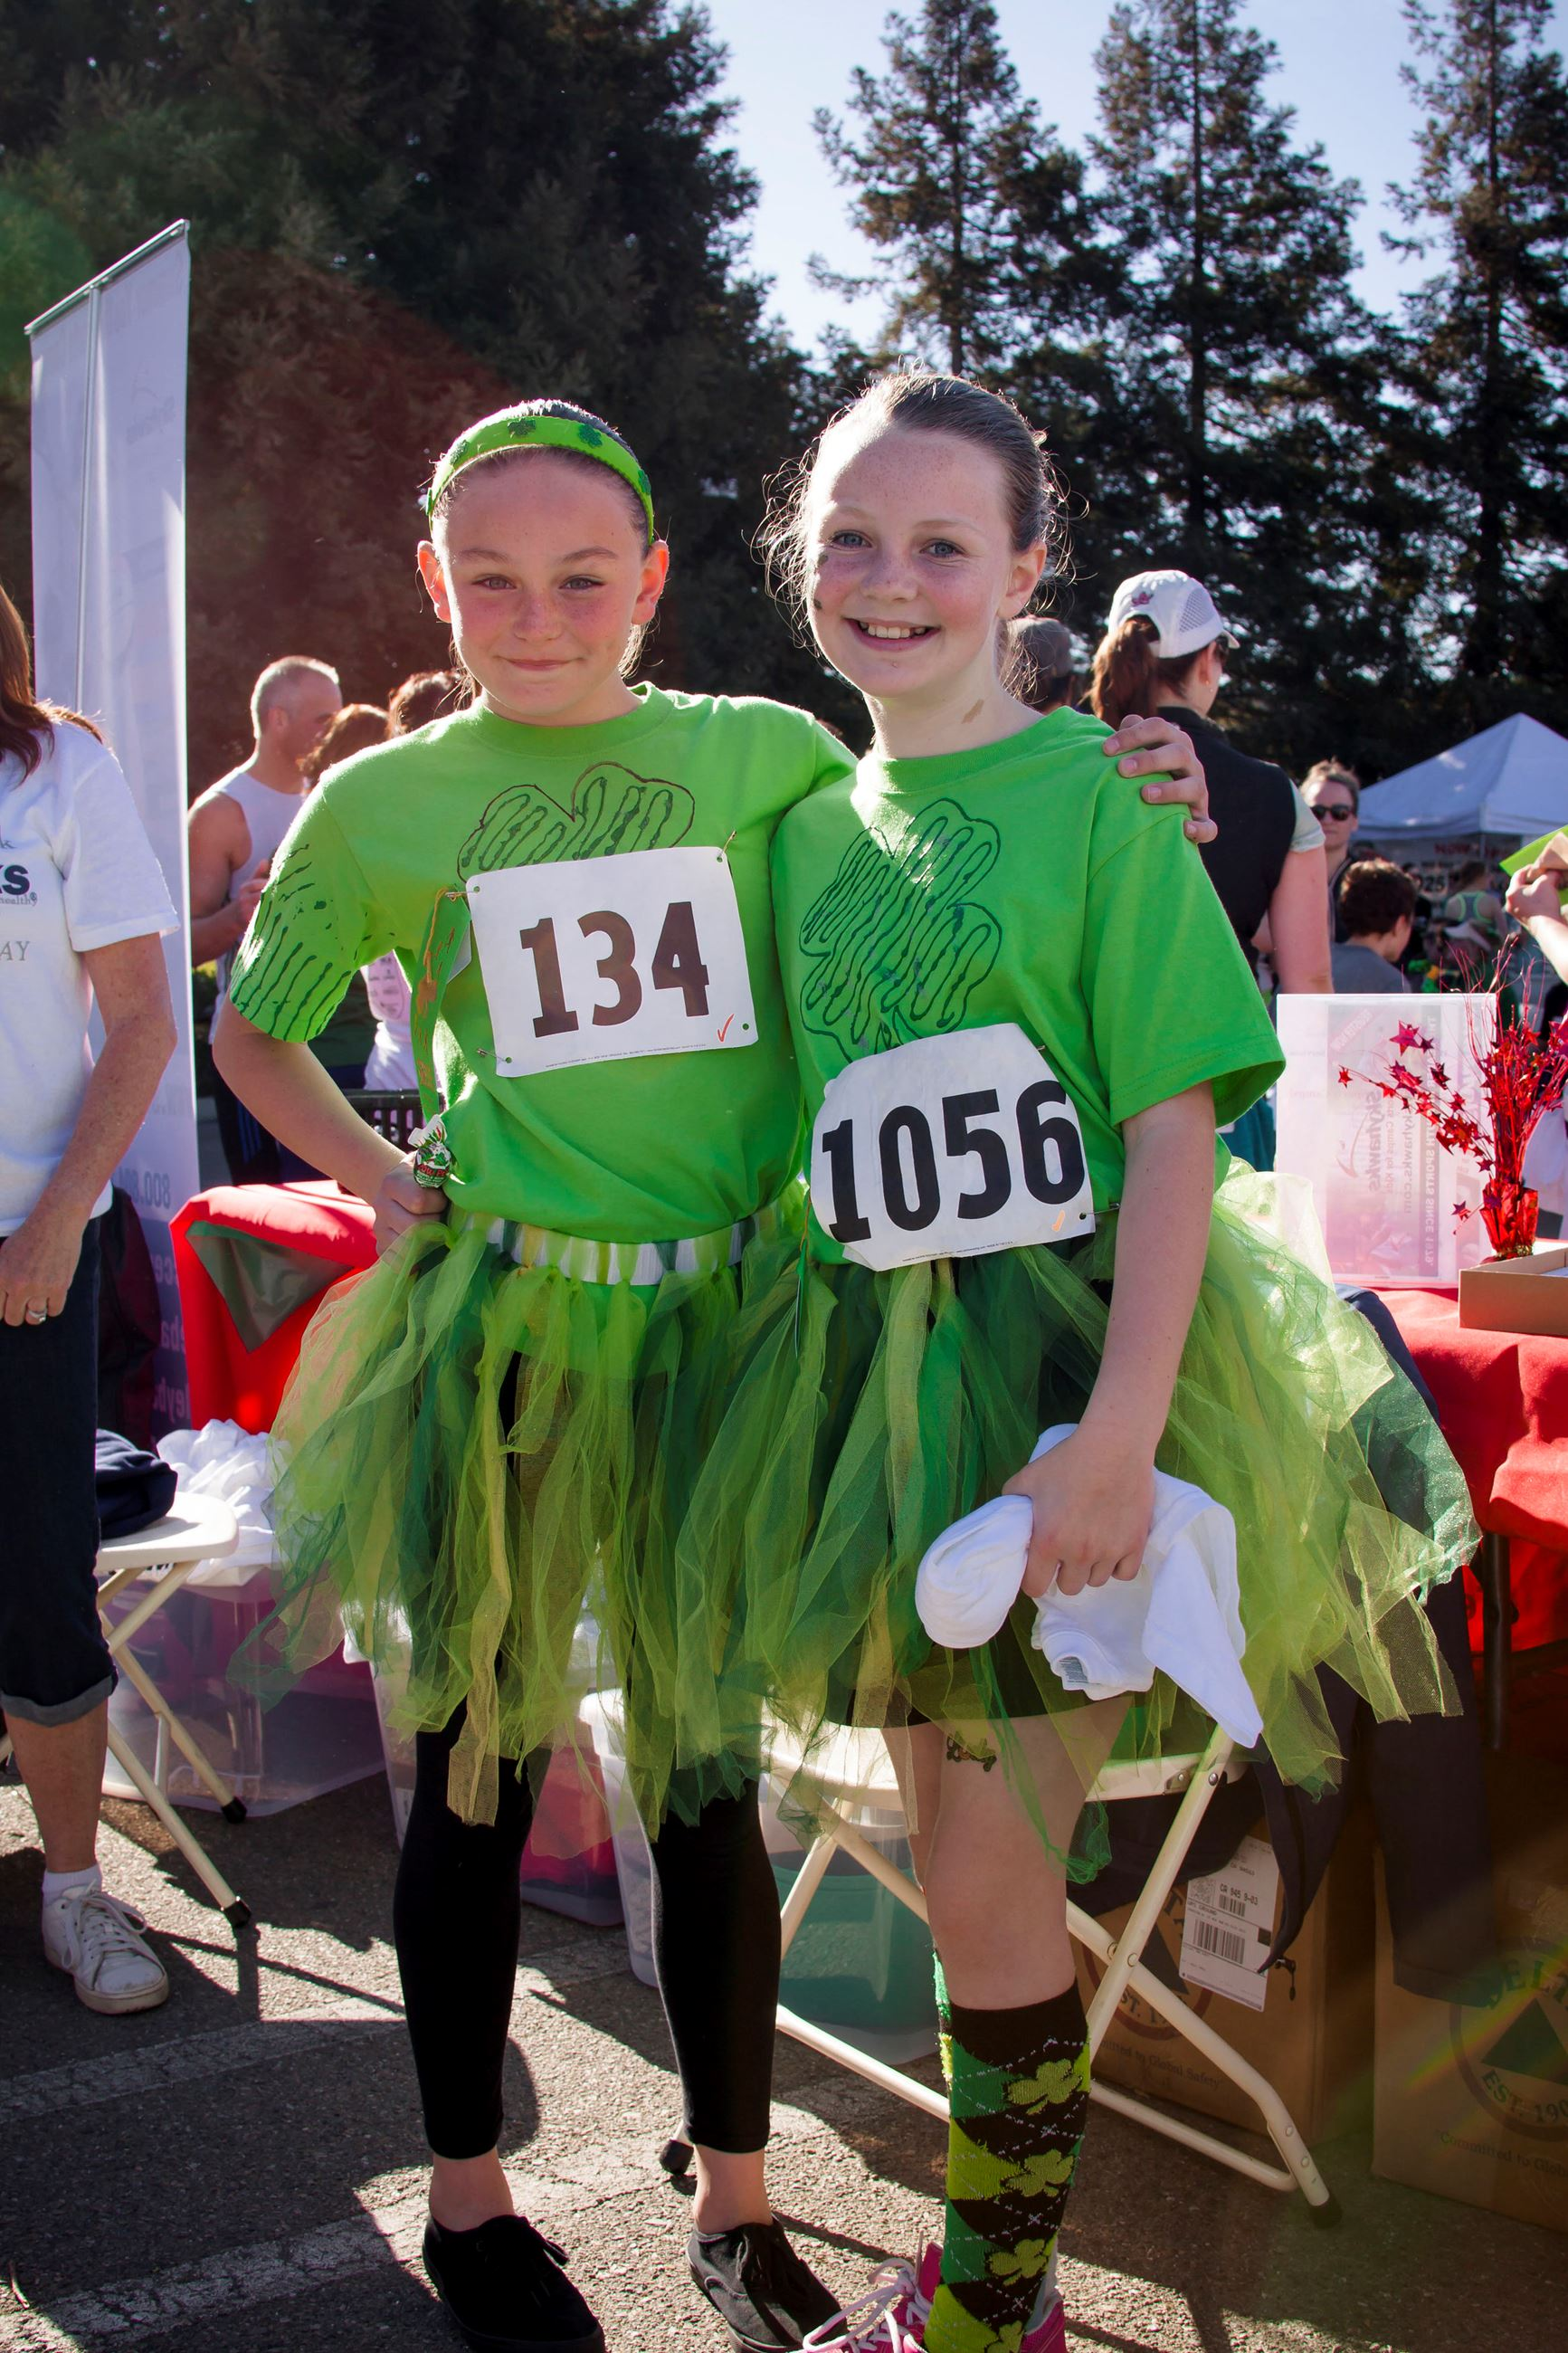 Race - Little Green tutu twins